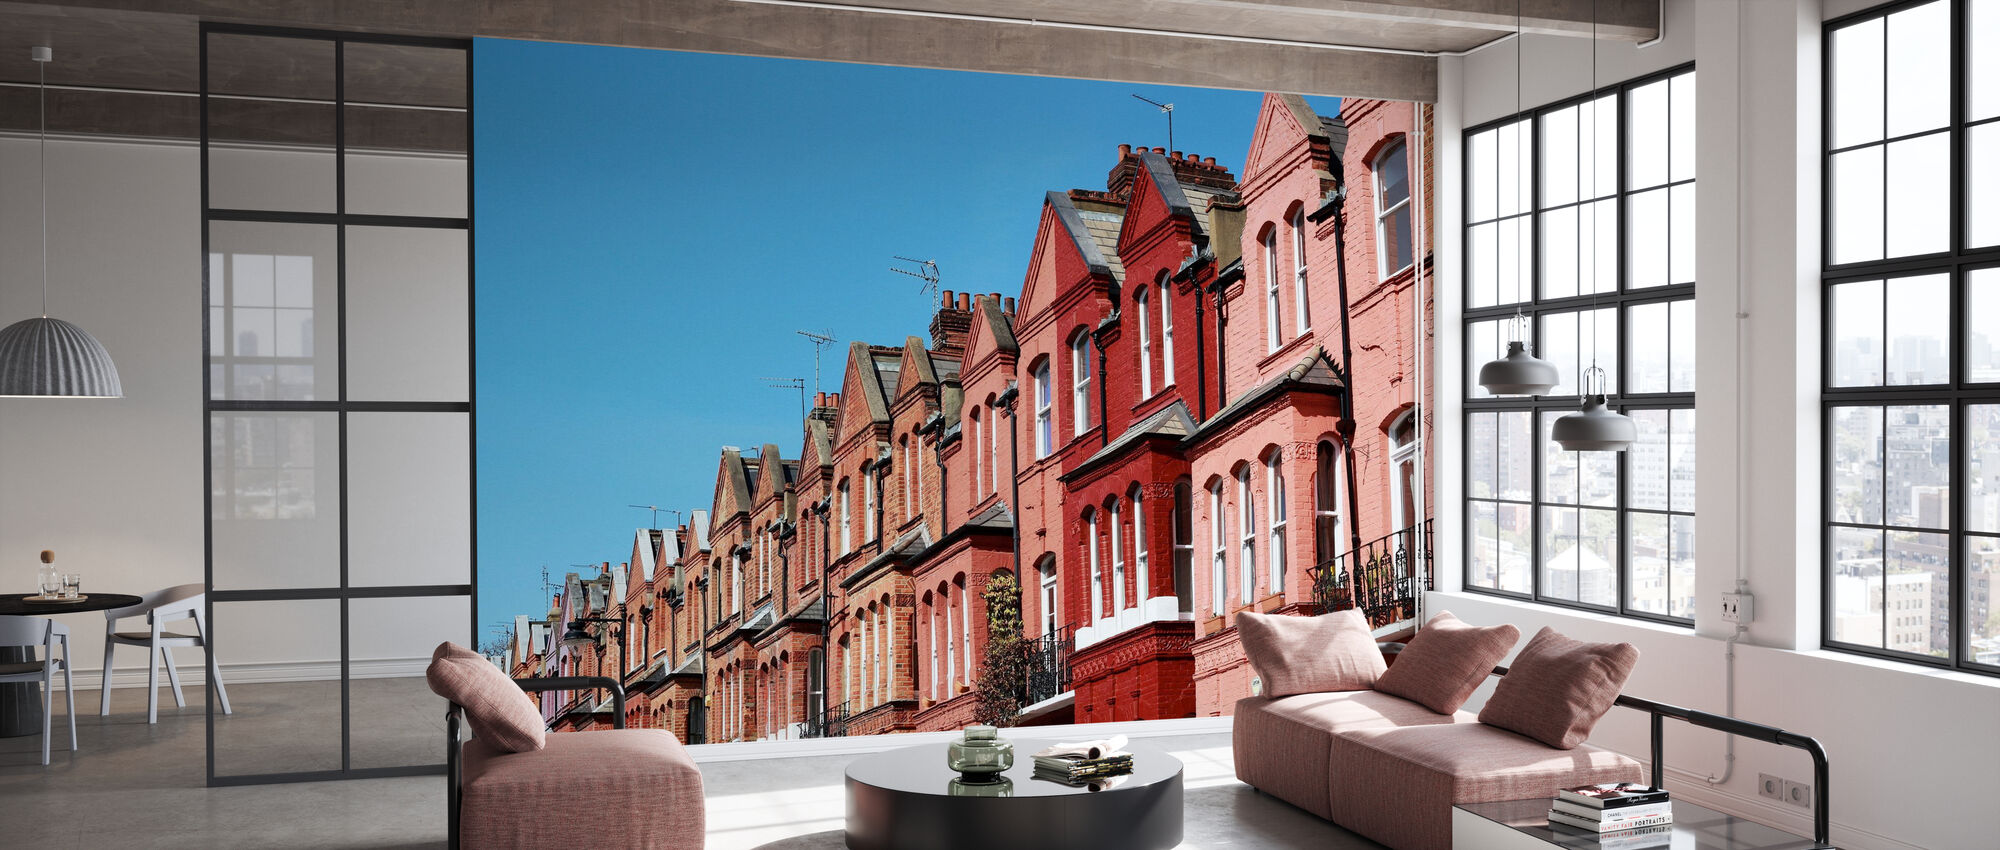 Coral Colored Houses in London - Wallpaper - Office